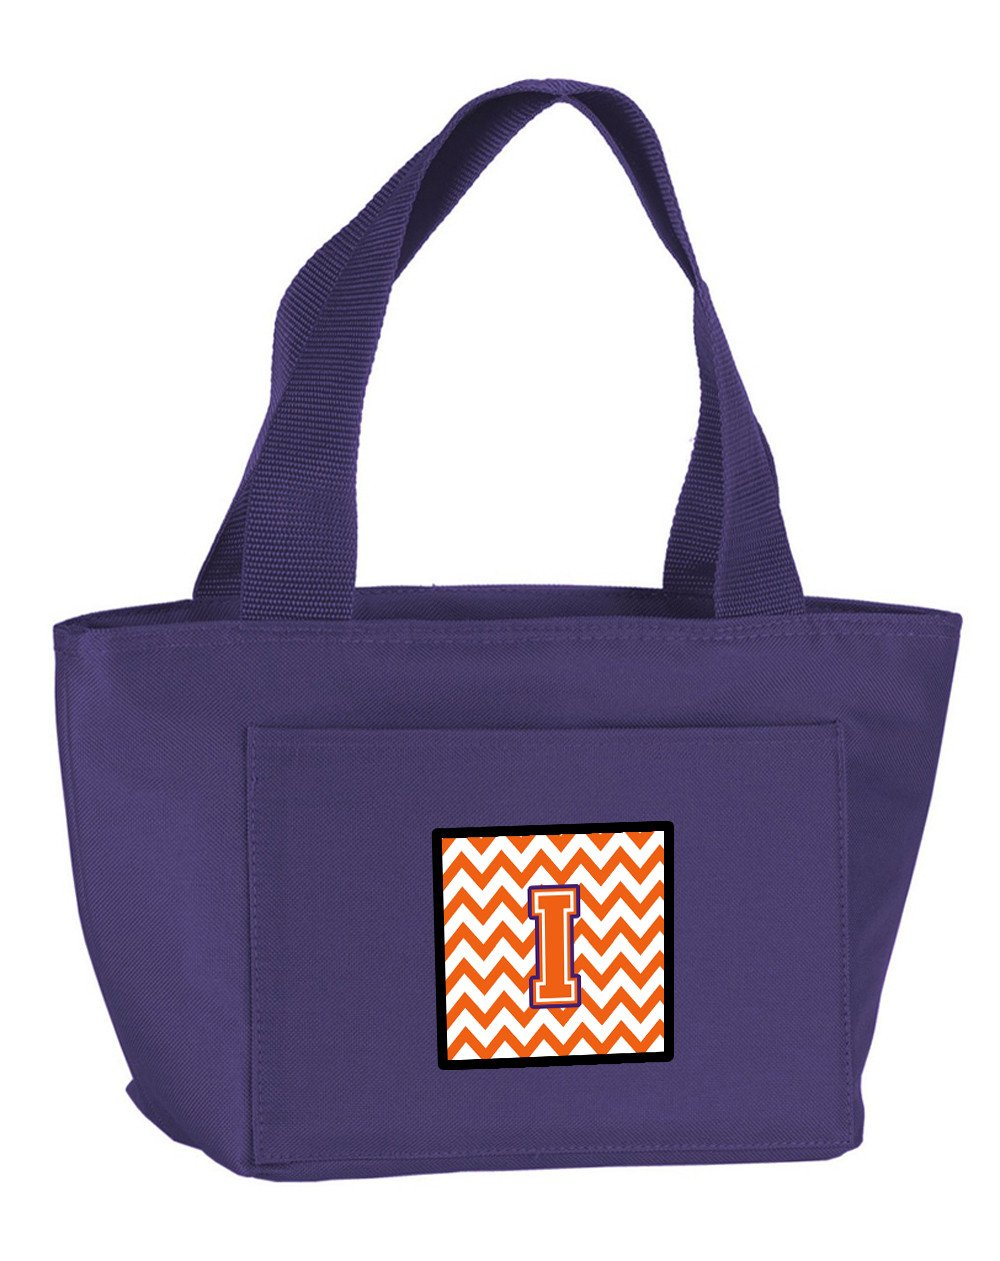 Letter I Chevron Orange and Regalia Lunch Bag CJ1062-IPR-8808 by Caroline's Treasures